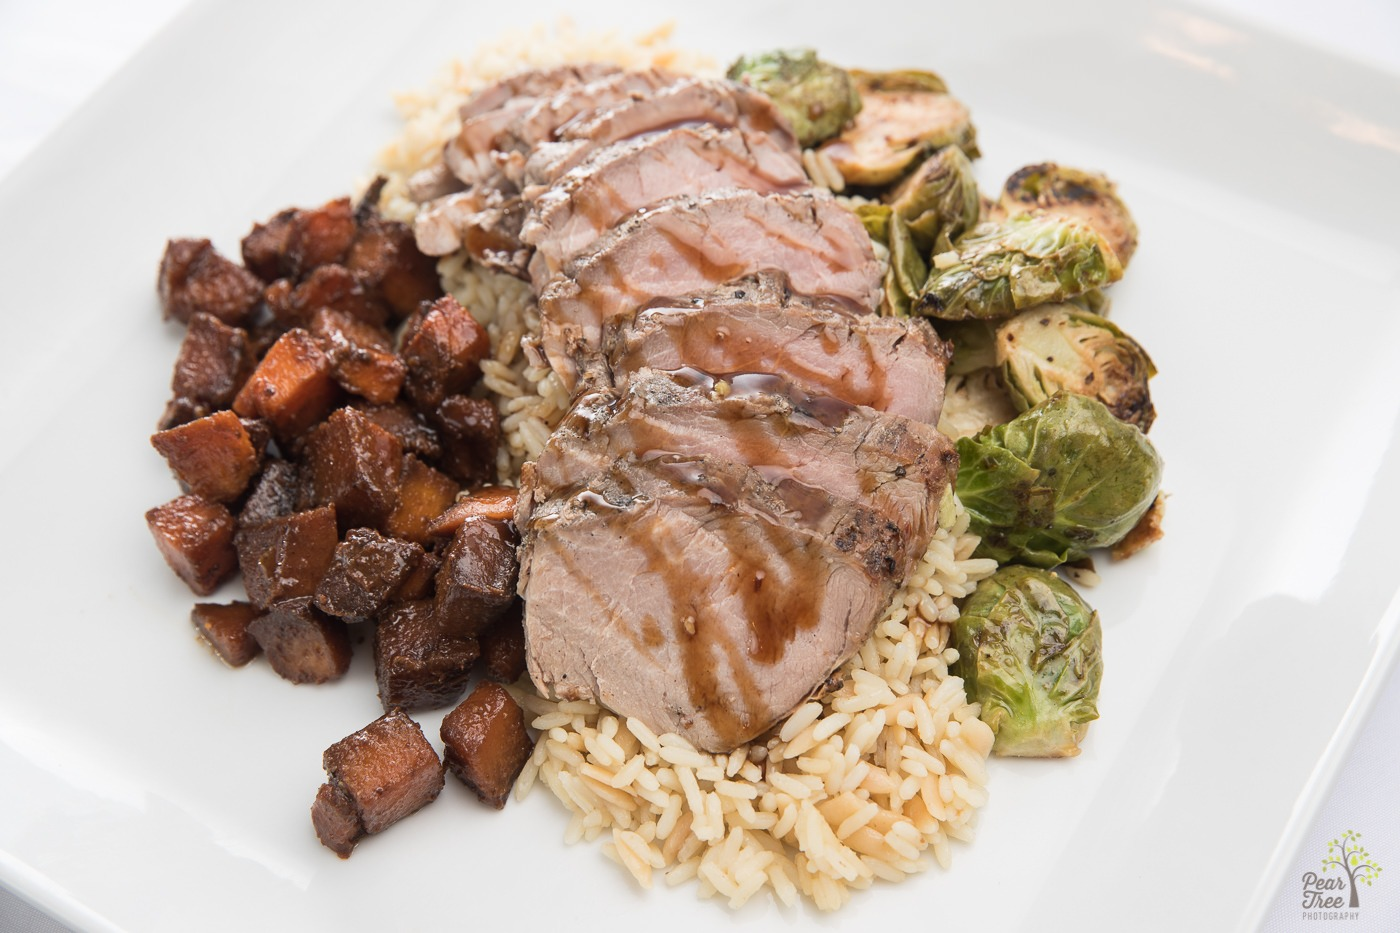 Pork tenderloin on a bed of rice served with roasted potatoes and brussell sprouts prepared by Divine Taste of Heaven.